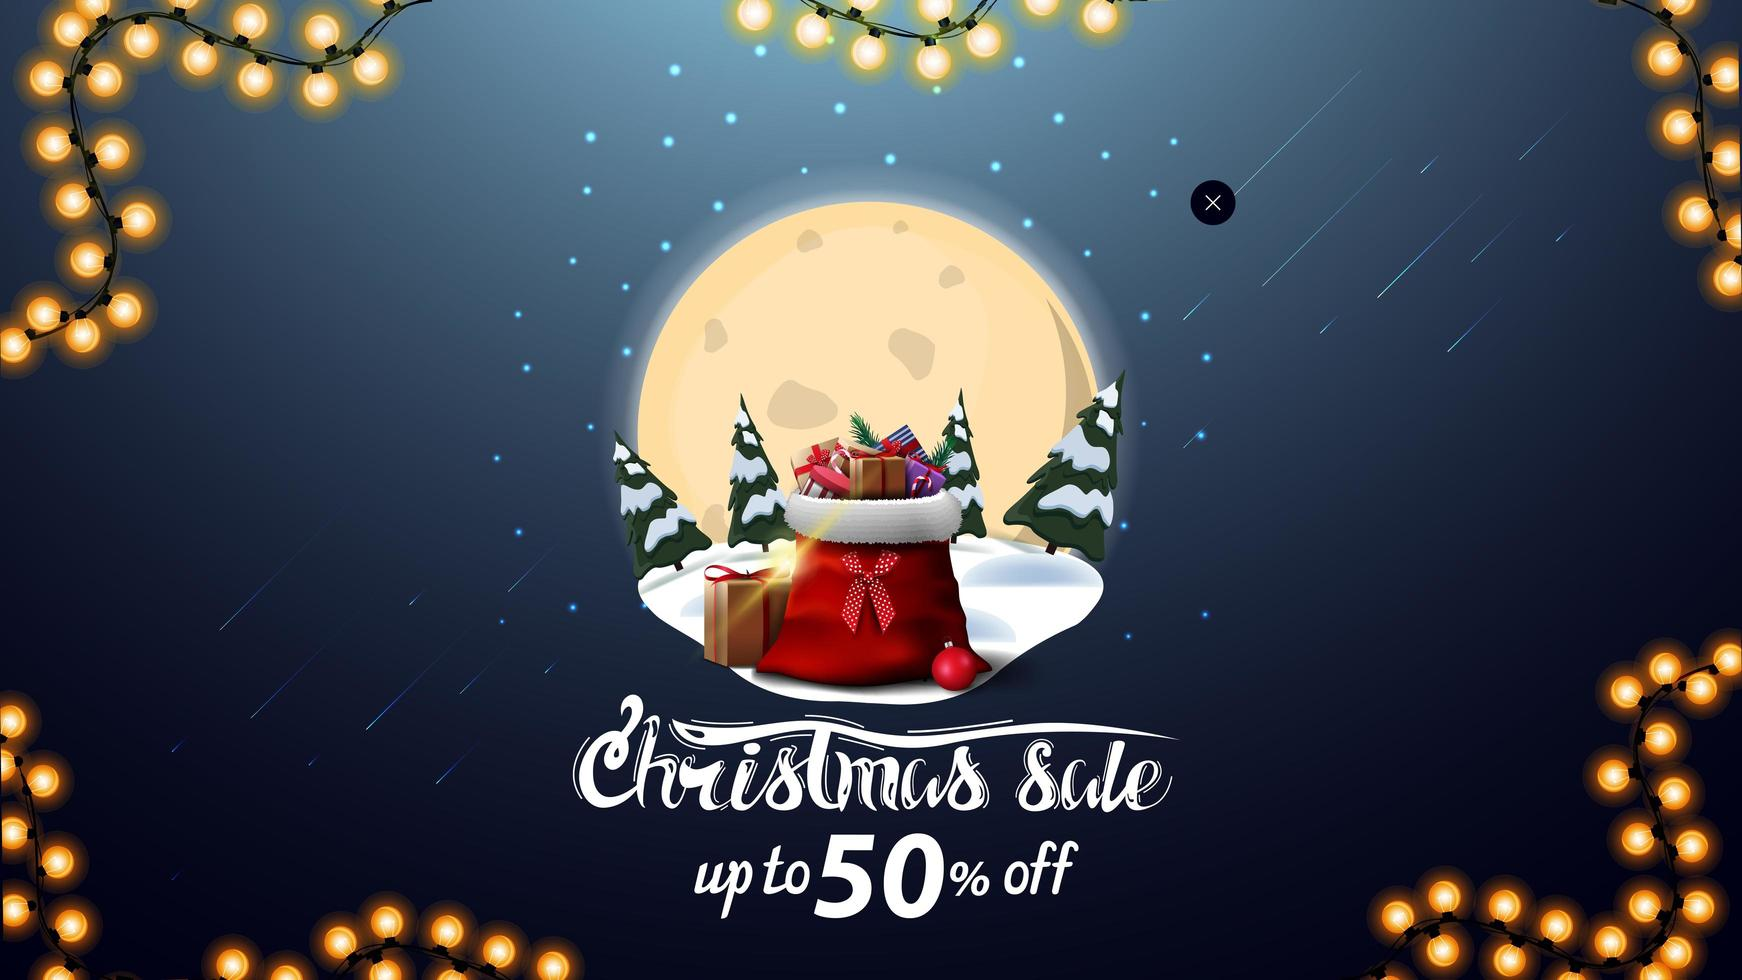 Christmas sale, up to 50 off, blue discount banner with big full moon, snowdrifts, pines, starry sky and Santa Claus bag with presents vector